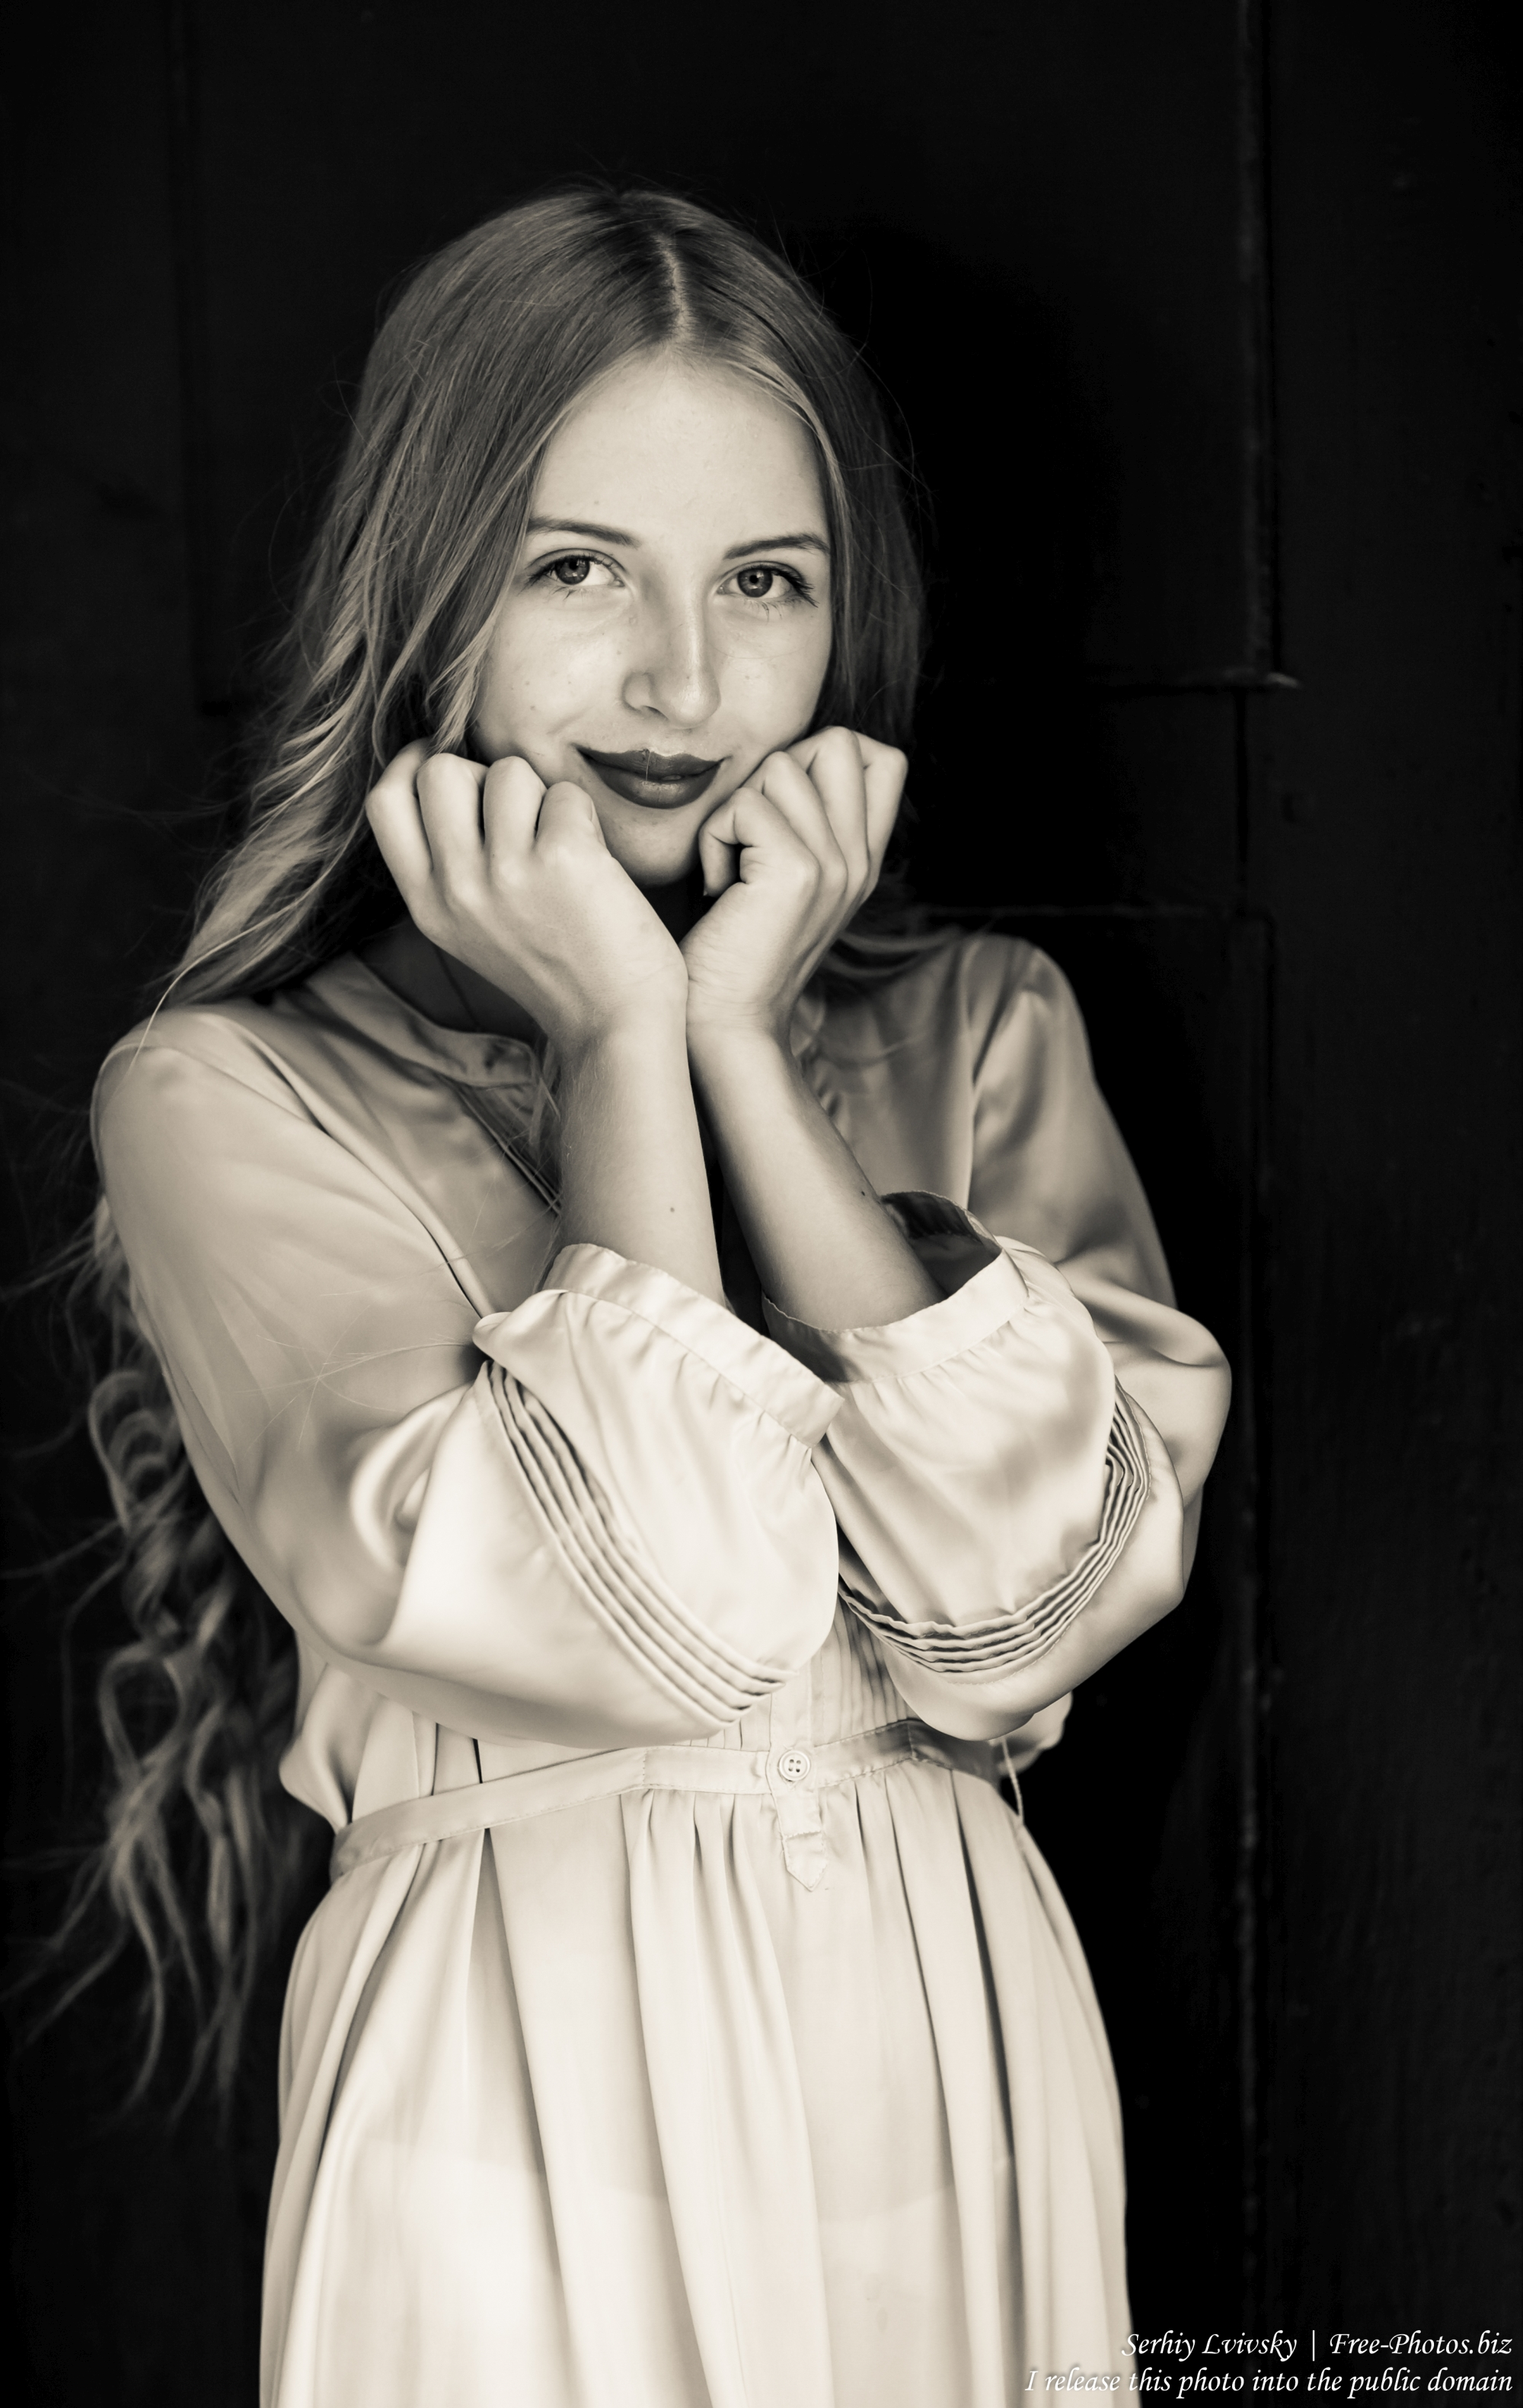 ania_a_14-year-old_natural_blonde_girl_photographed_by_serhiy_lvivsky_in_august_2017_18